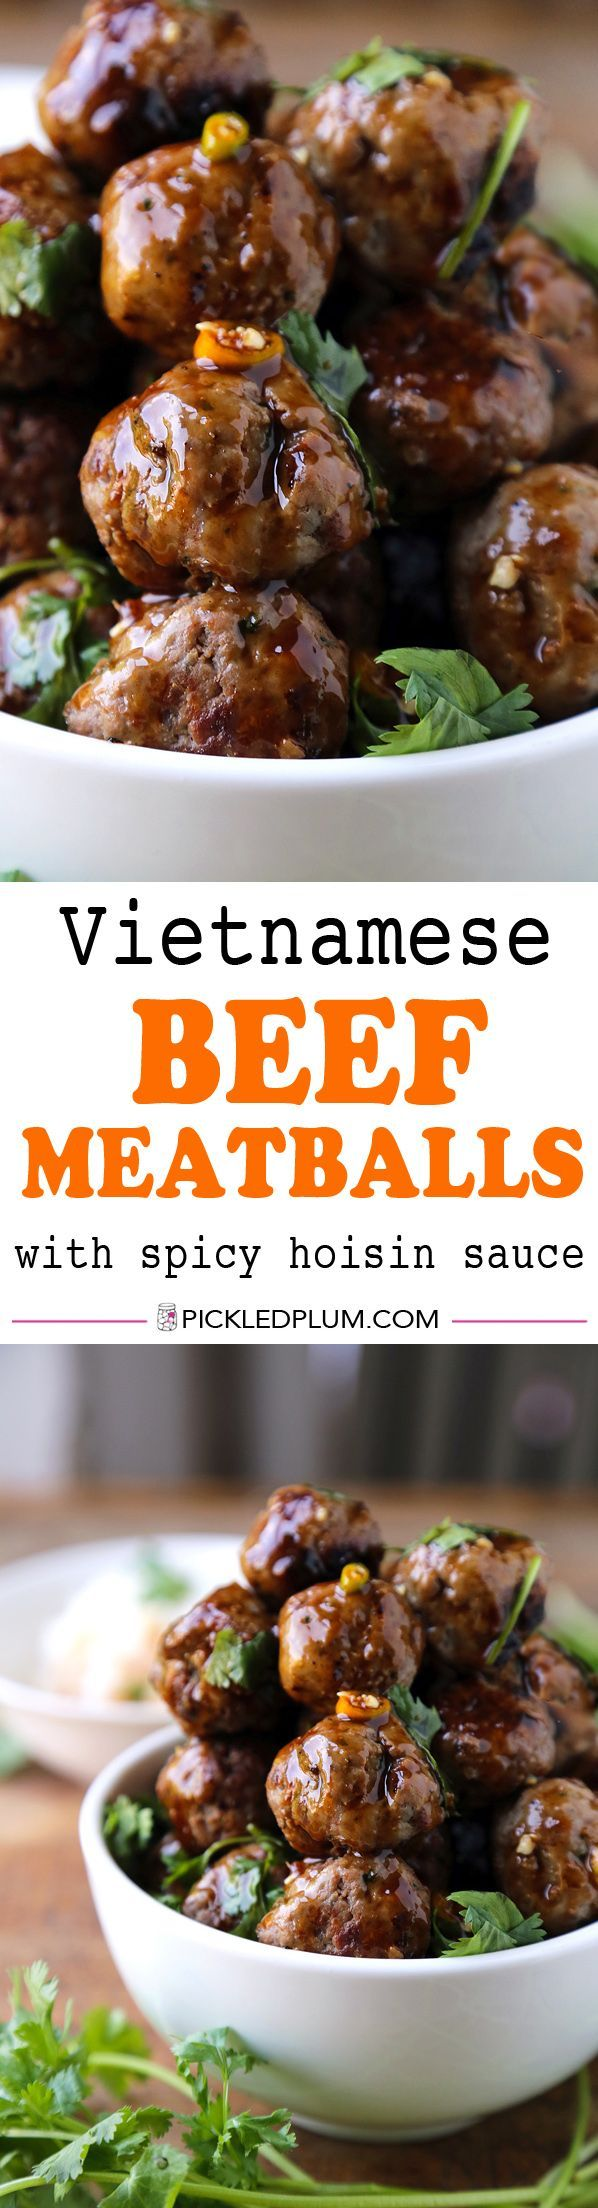 Vietnamese Beef Meatballs With Spicy Hoisin Sauce - SO easy to make! The tastiest, most savory meatballs you've ever tasted! We love these with freshly sliced tomatoes and coriander! | pickledplum.com